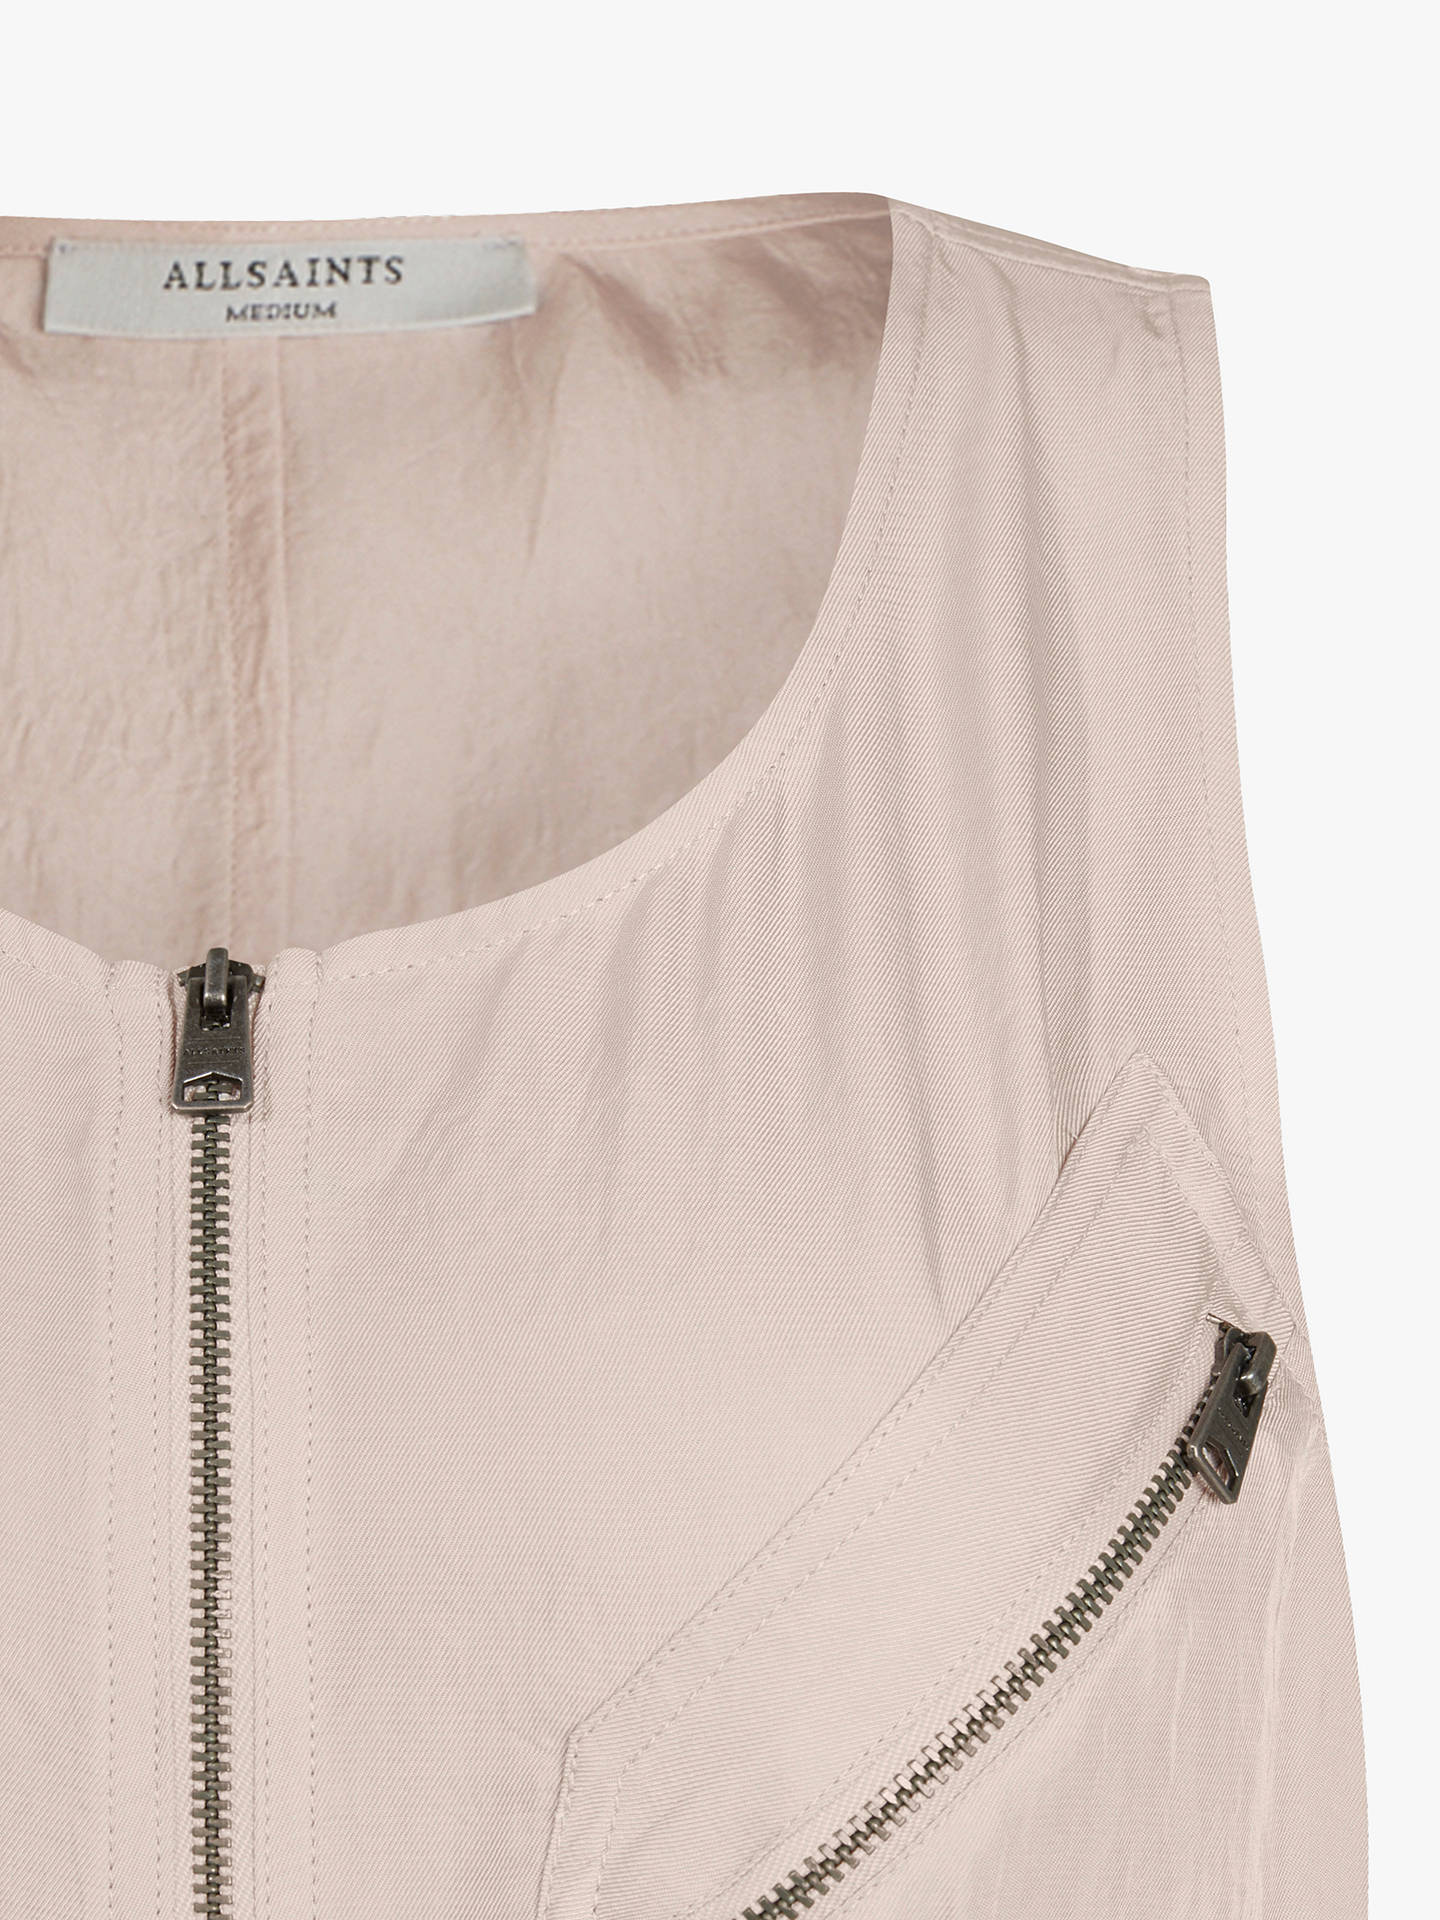 Buy AllSaints Vola Zip Midi Dress, Muted Pink, 8 Online at johnlewis.com